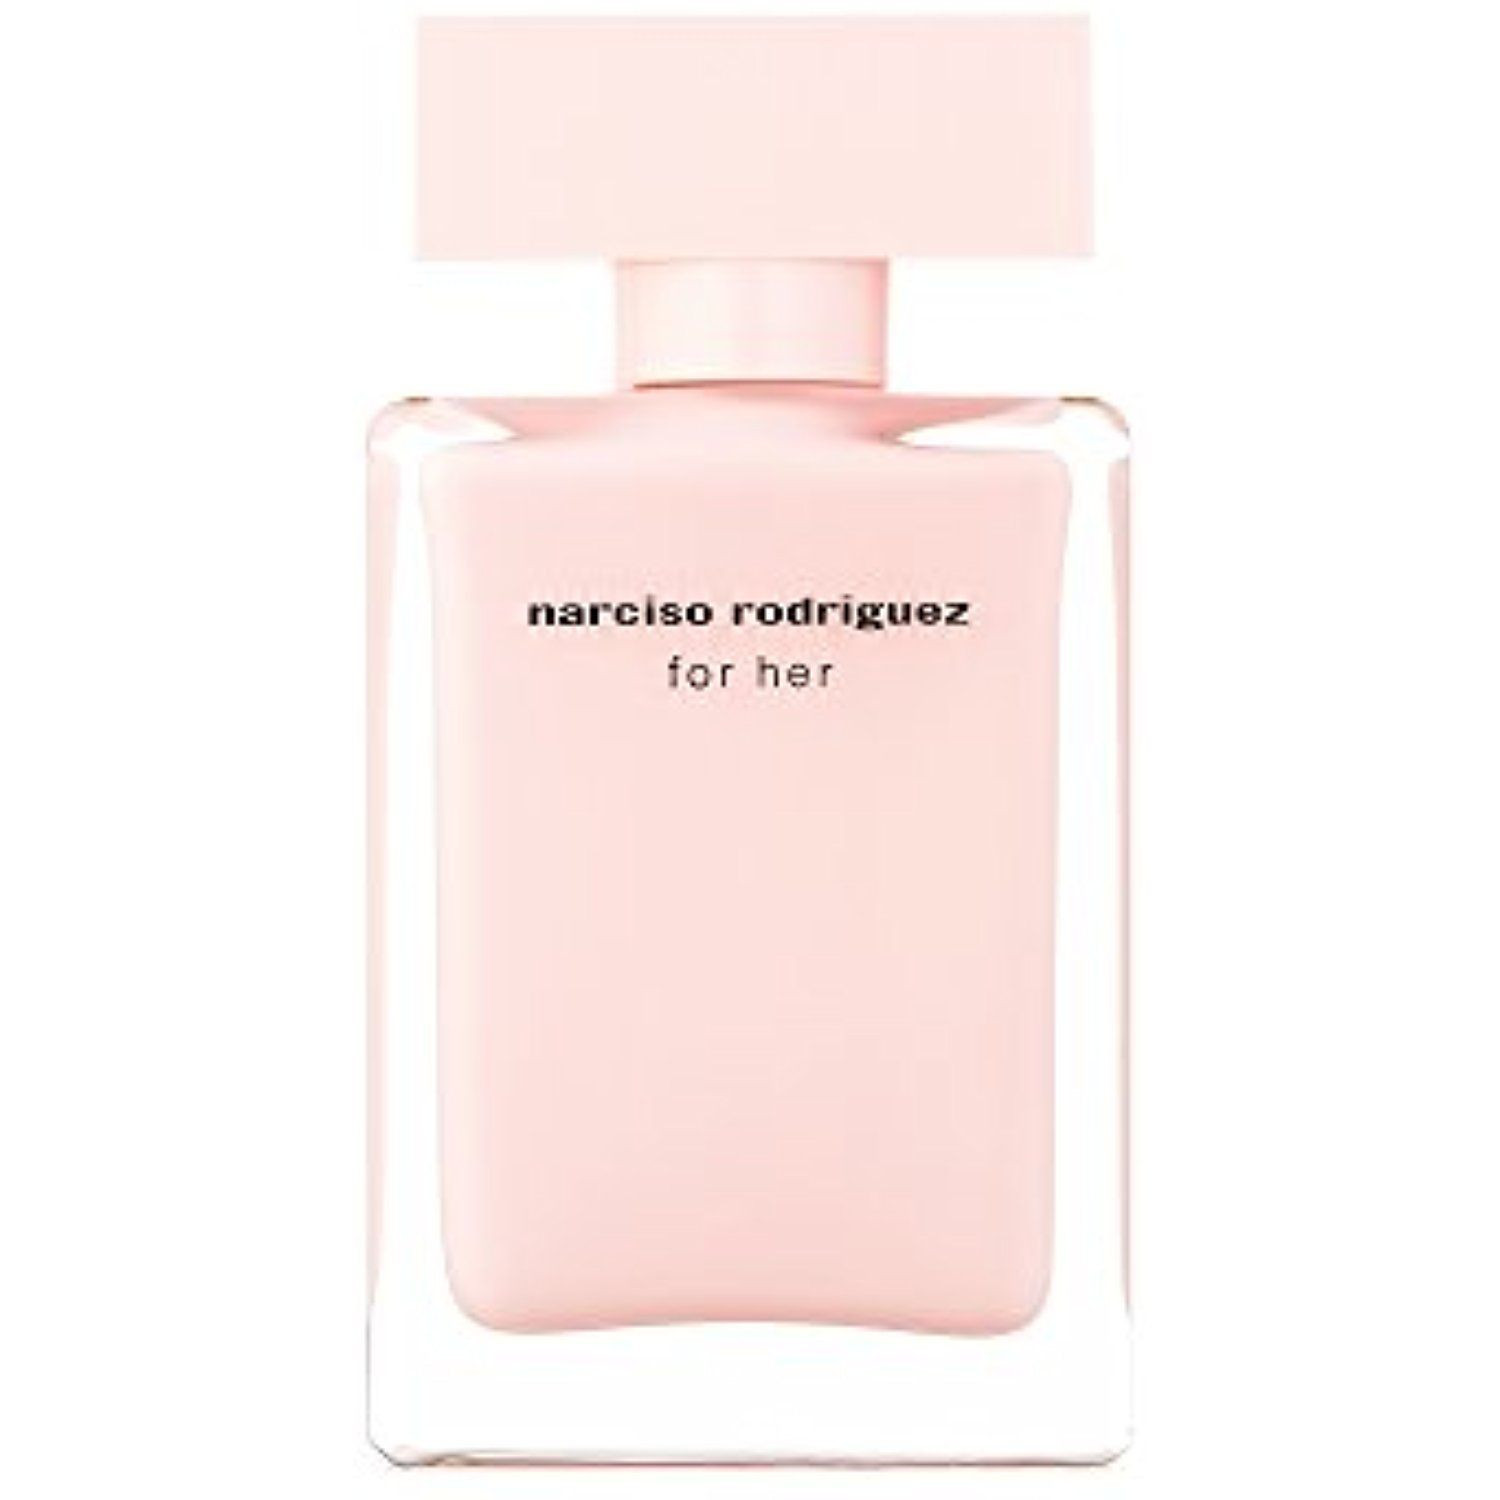 Narciso Rodriguez By Narciso Rodriguez For Her Eau De Parfum Spray 1 6 Ounce Bottle For More Information Visit Narciso Rodriguez Eau De Parfum Fragrance